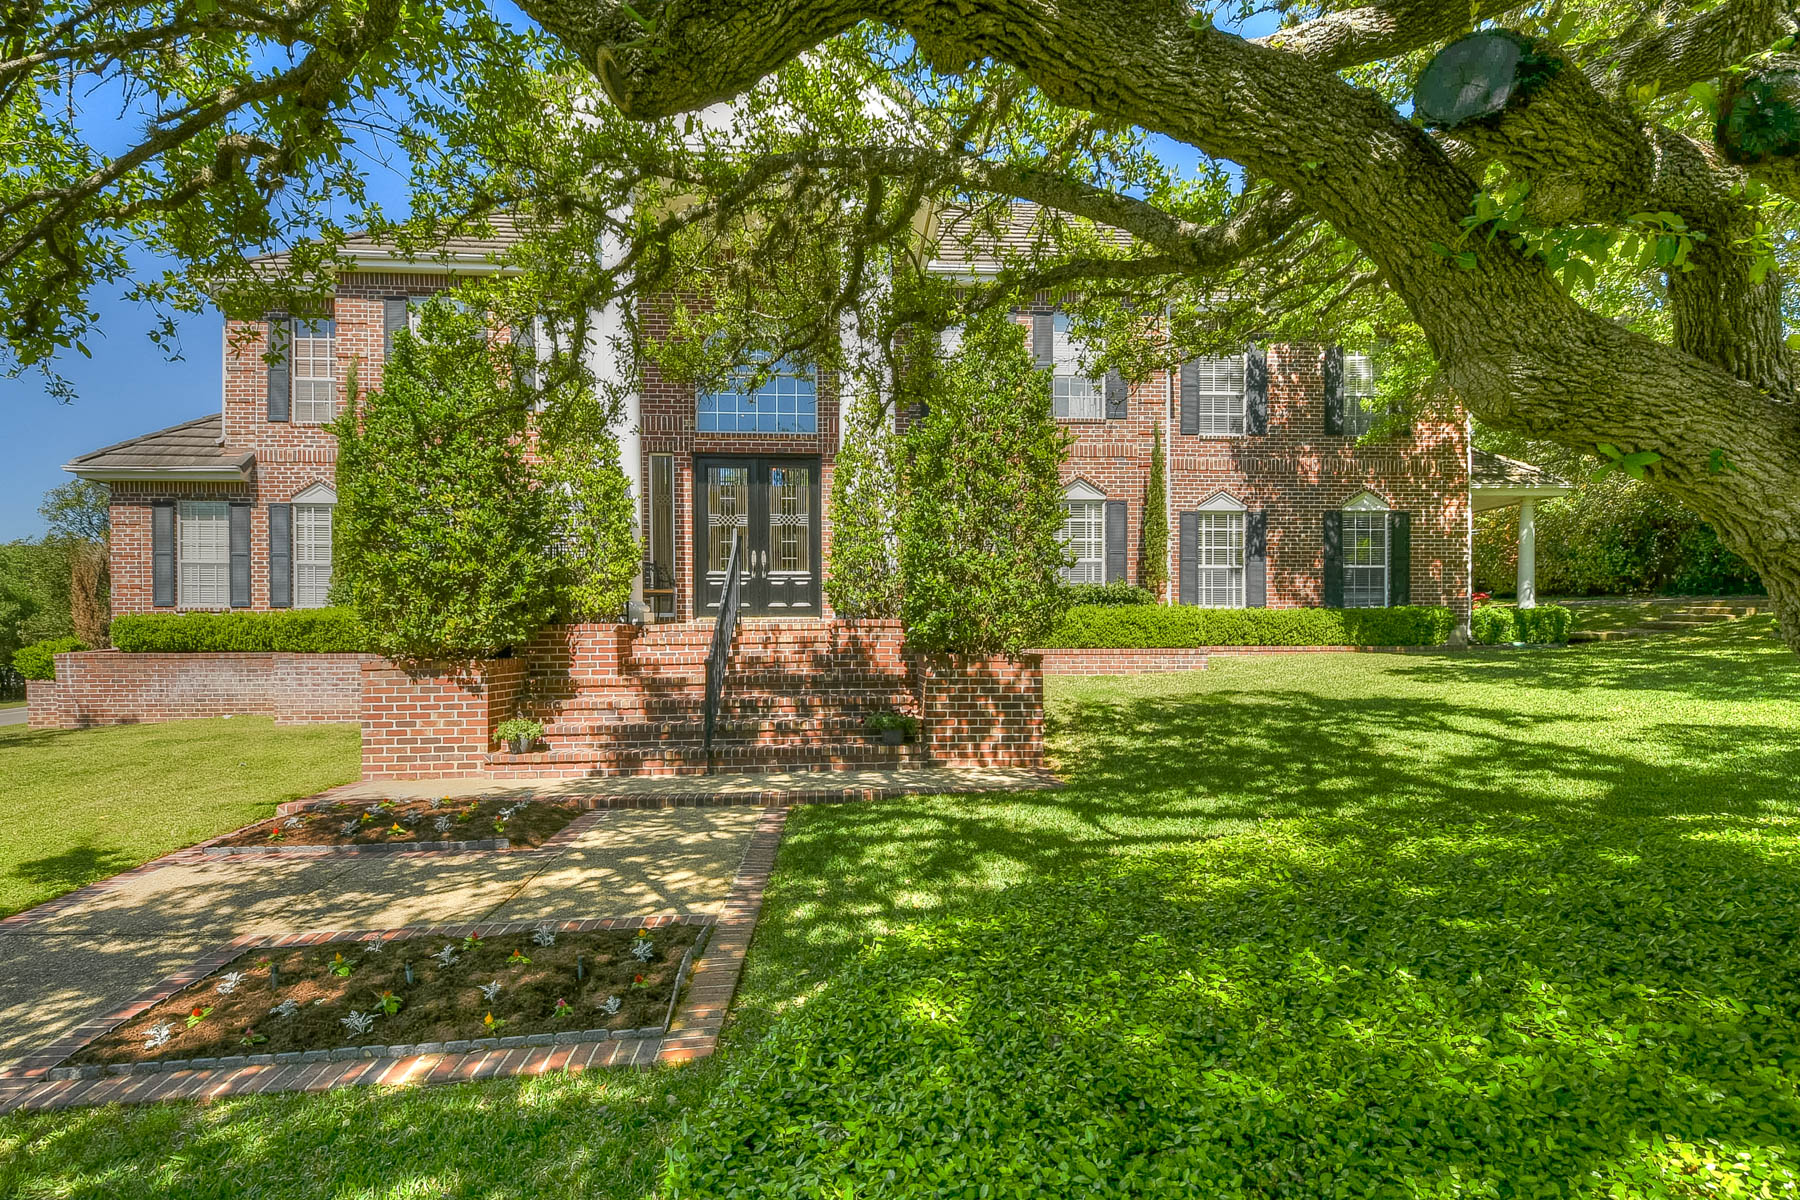 Single Family Home for Sale at Beautiful Home on Large Corner Lot in The Dominion 9 Mayborough Ln San Antonio, Texas 78257 United States